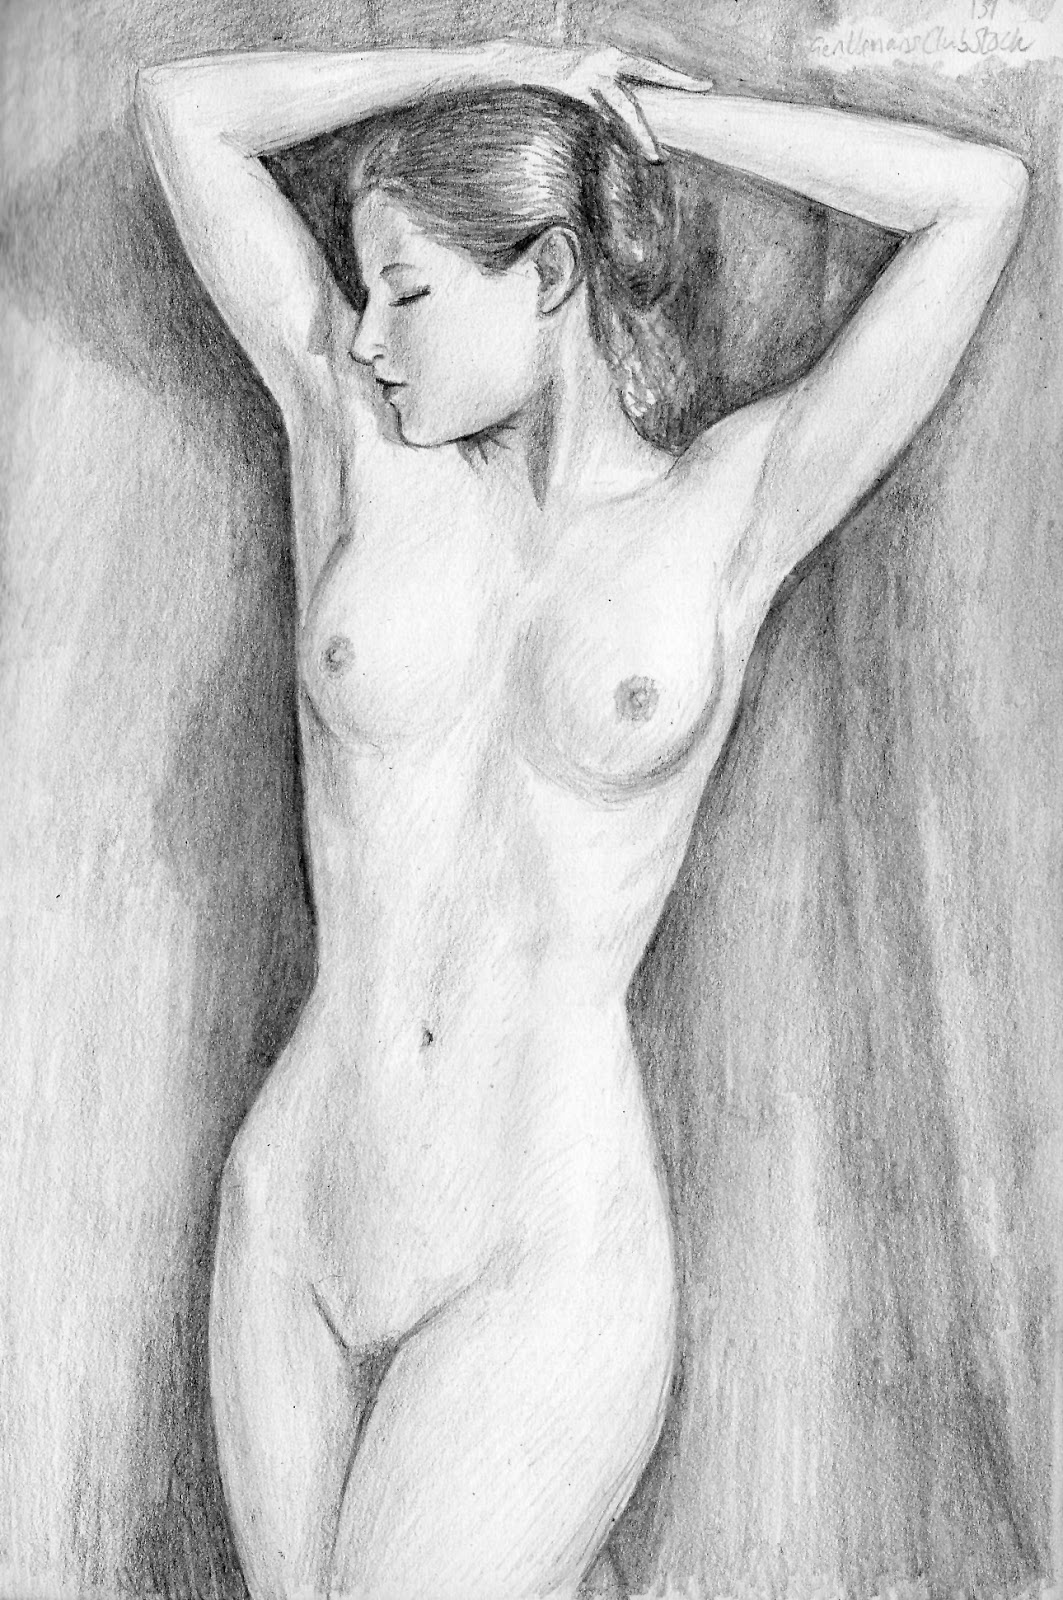 Likes cum art nude drawing fuck